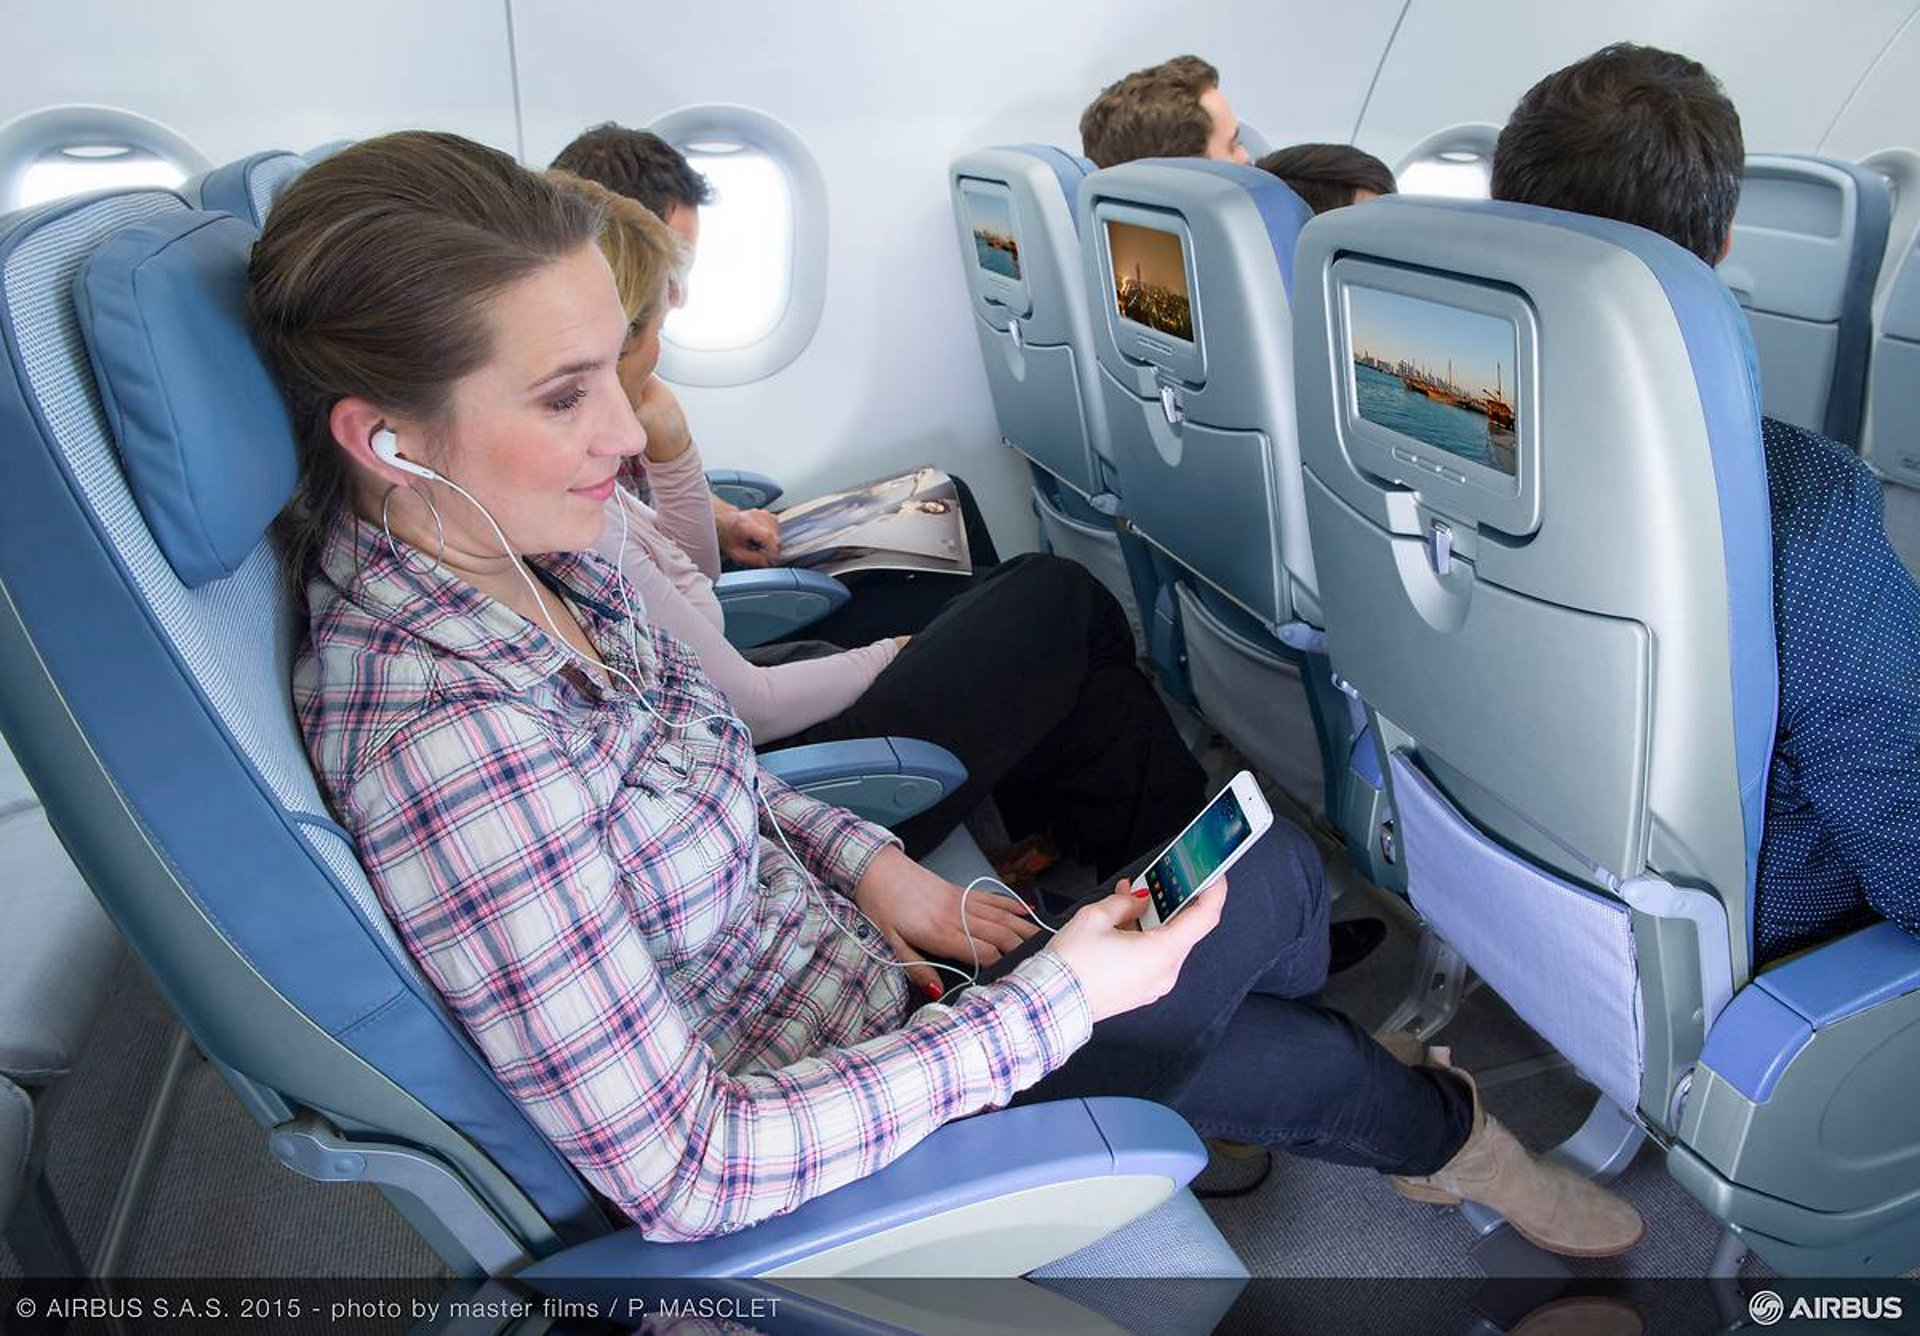 Passengers wish to stay connected, even on board the aircraft. According to a recent survey, 17% already change their flights for a better connectivity in the US.